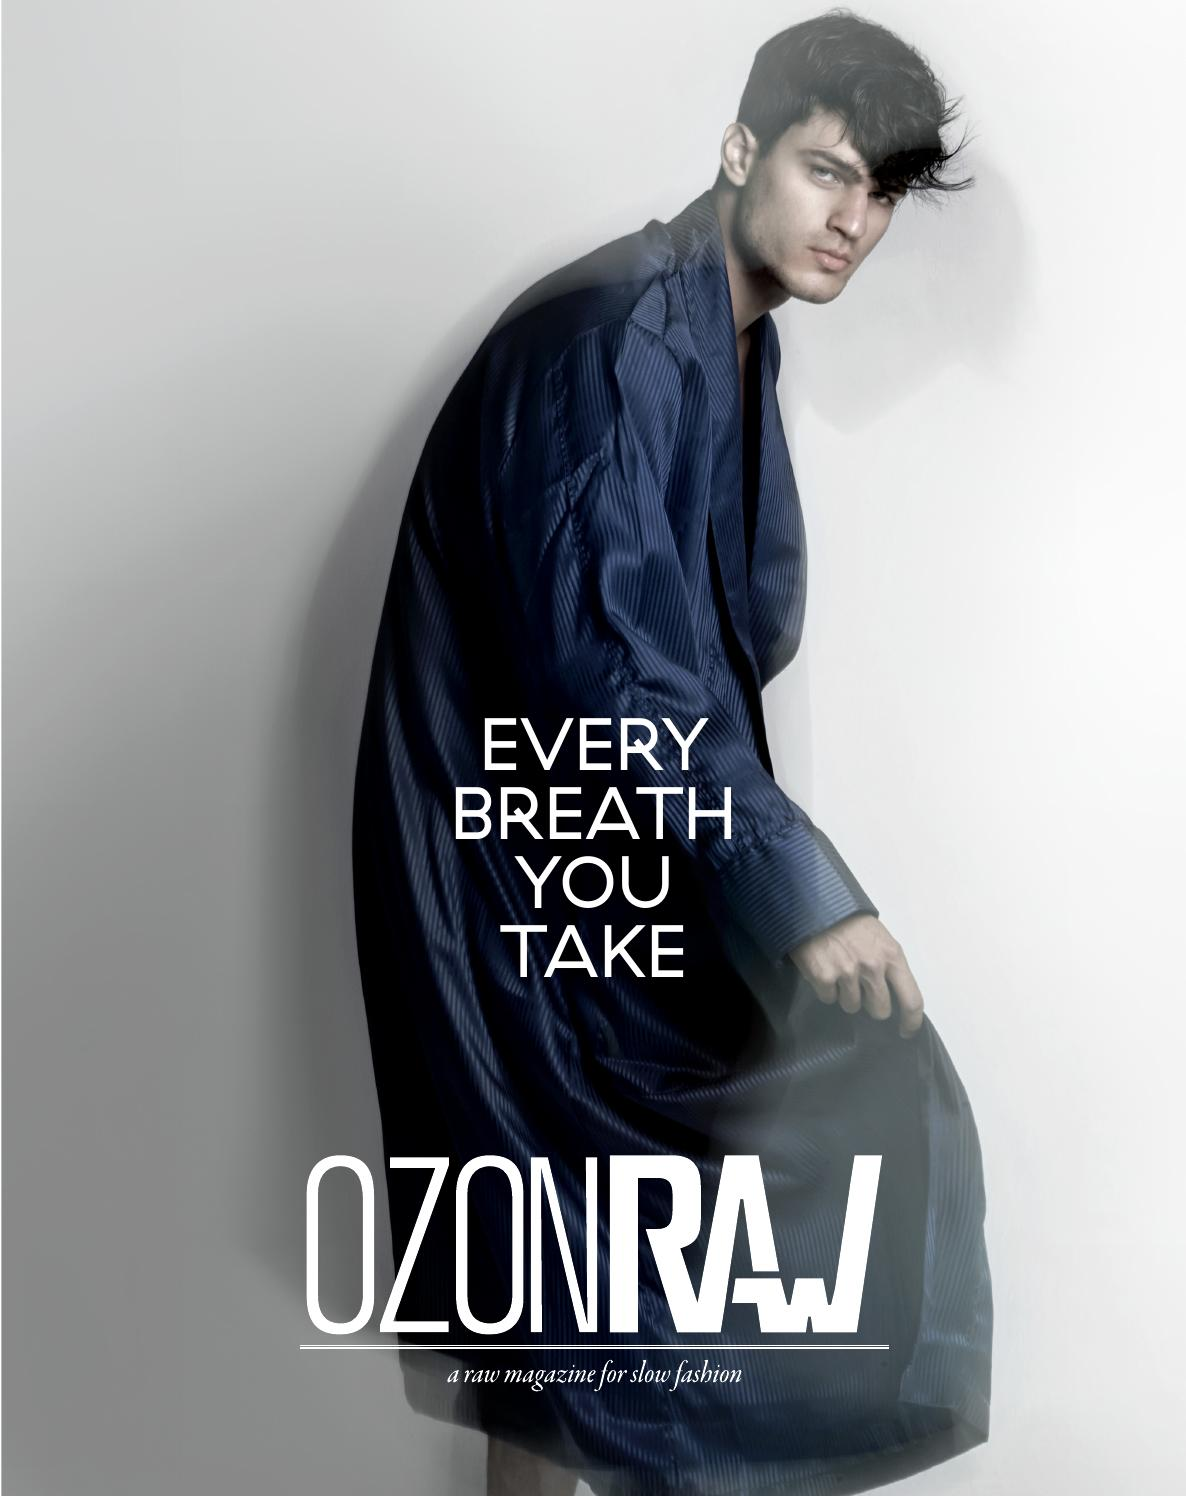 ab917124d45 OzonRaw_Every breath you take_ October 2013 by OZON Magazine - issuu